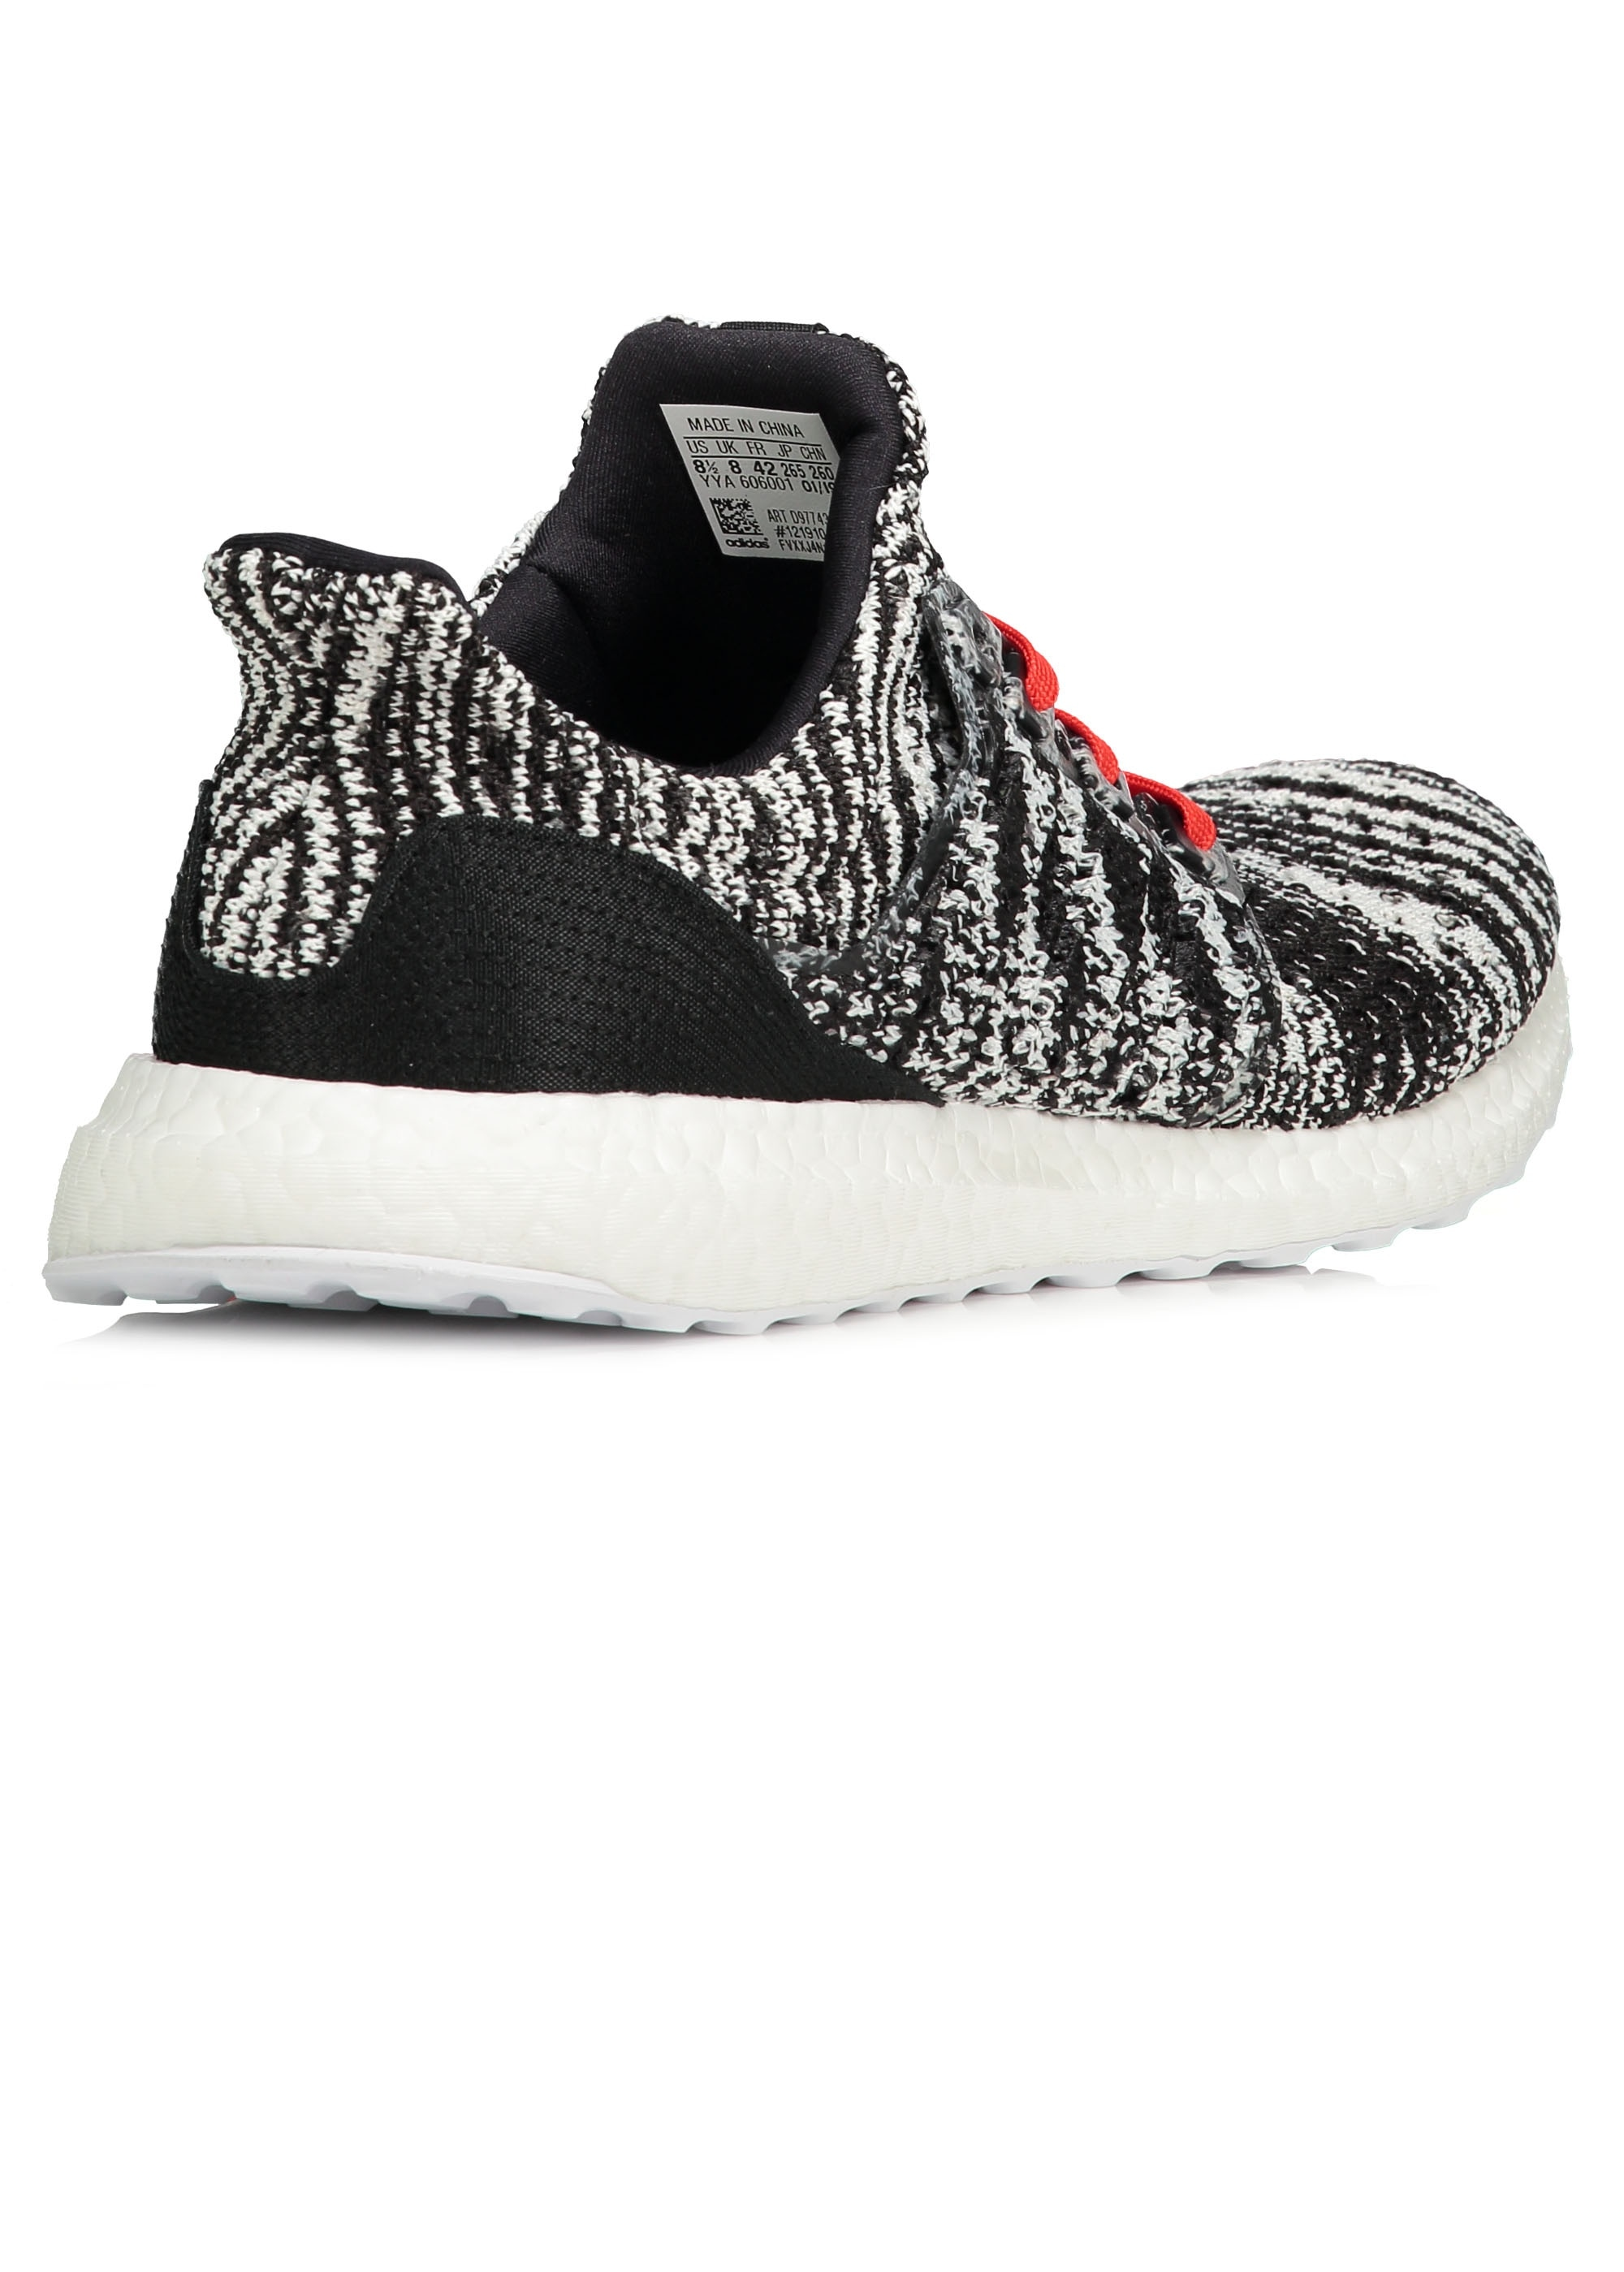 100% authentic be7e3 11baf Ultraboost Clima - Core Black   White   Active Red